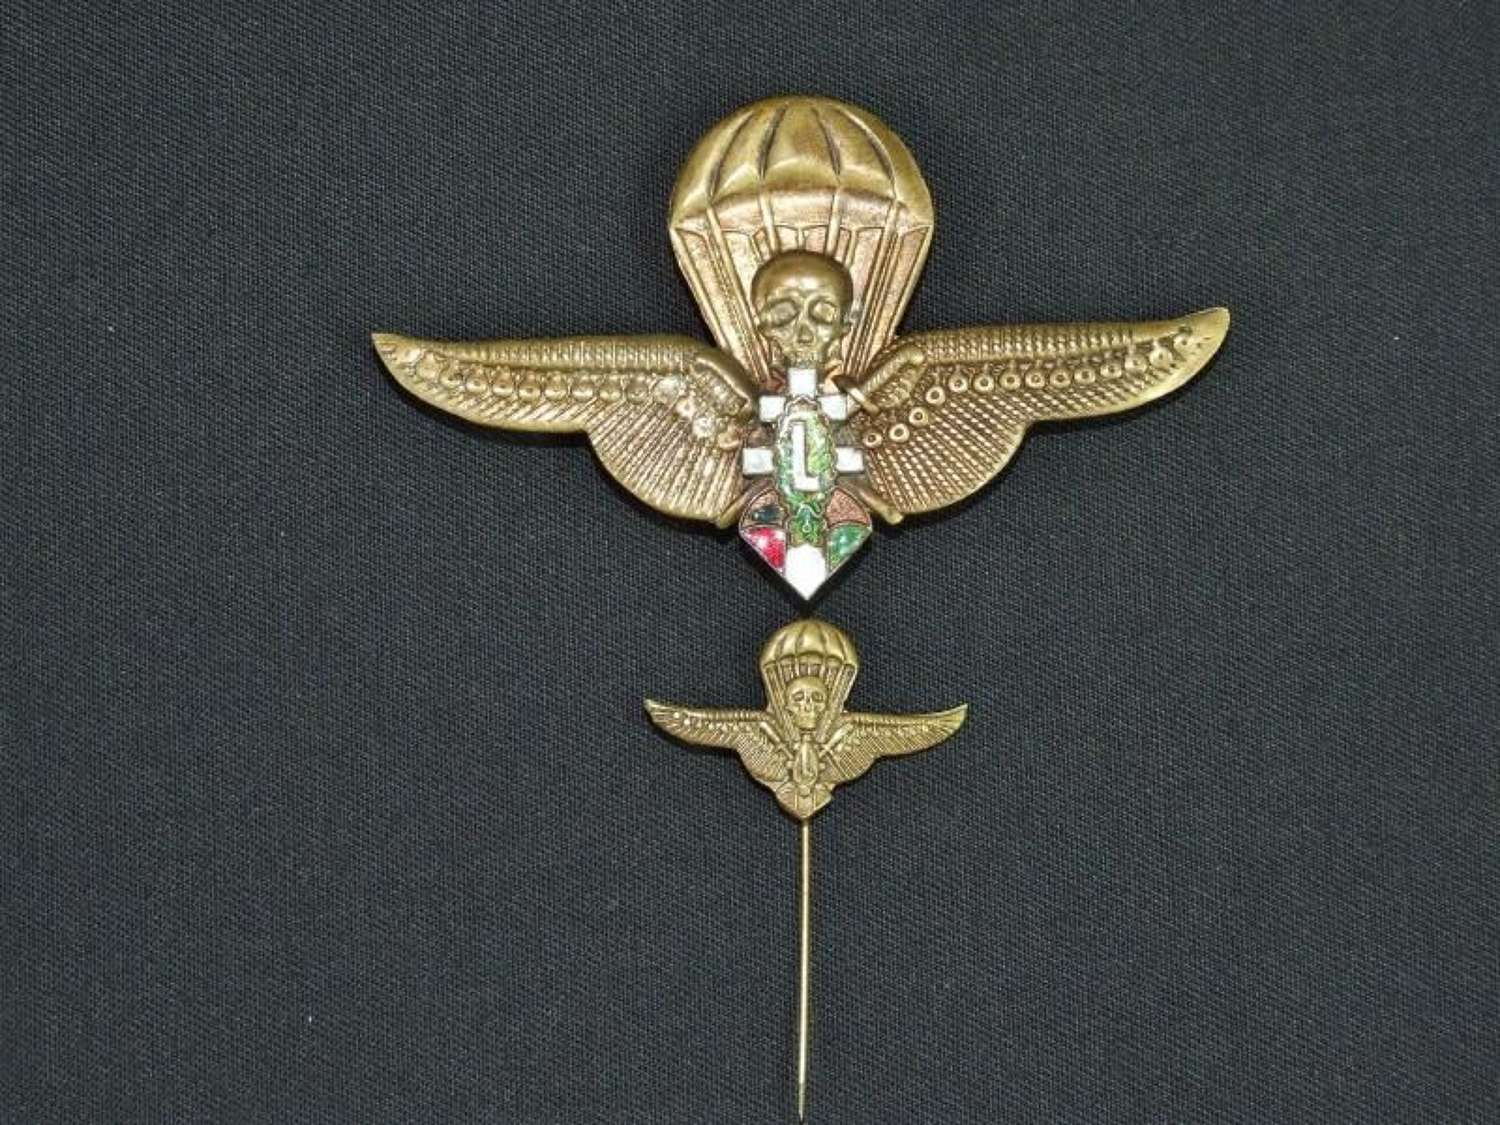 WW11 Hungarian Paratroop Wings to the Levente